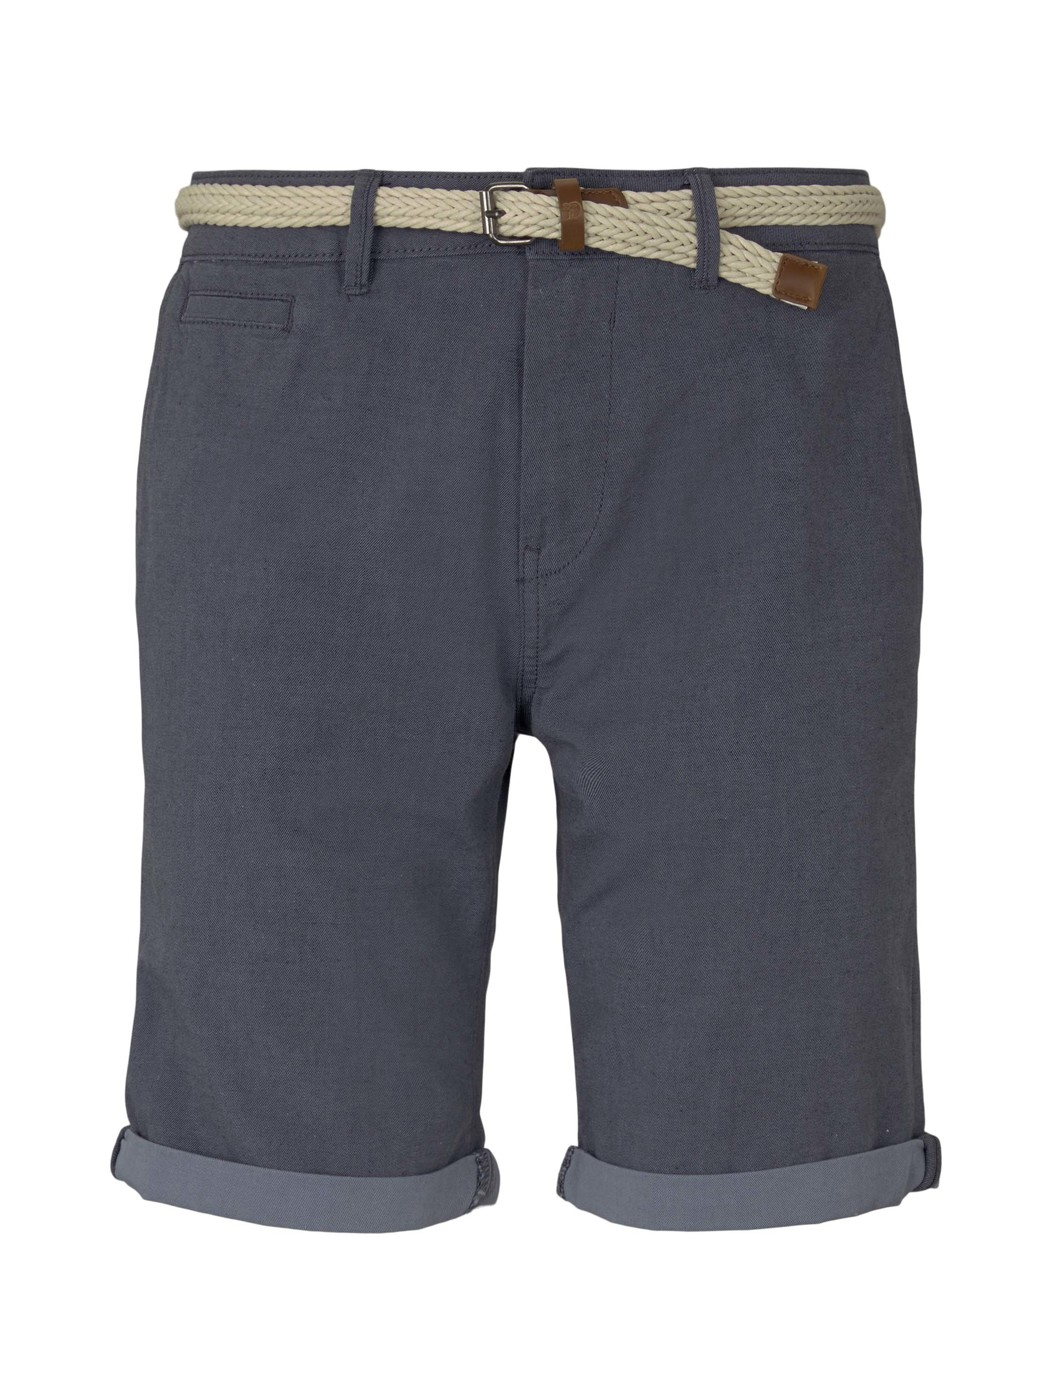 chino shorts yd with belt - Herren